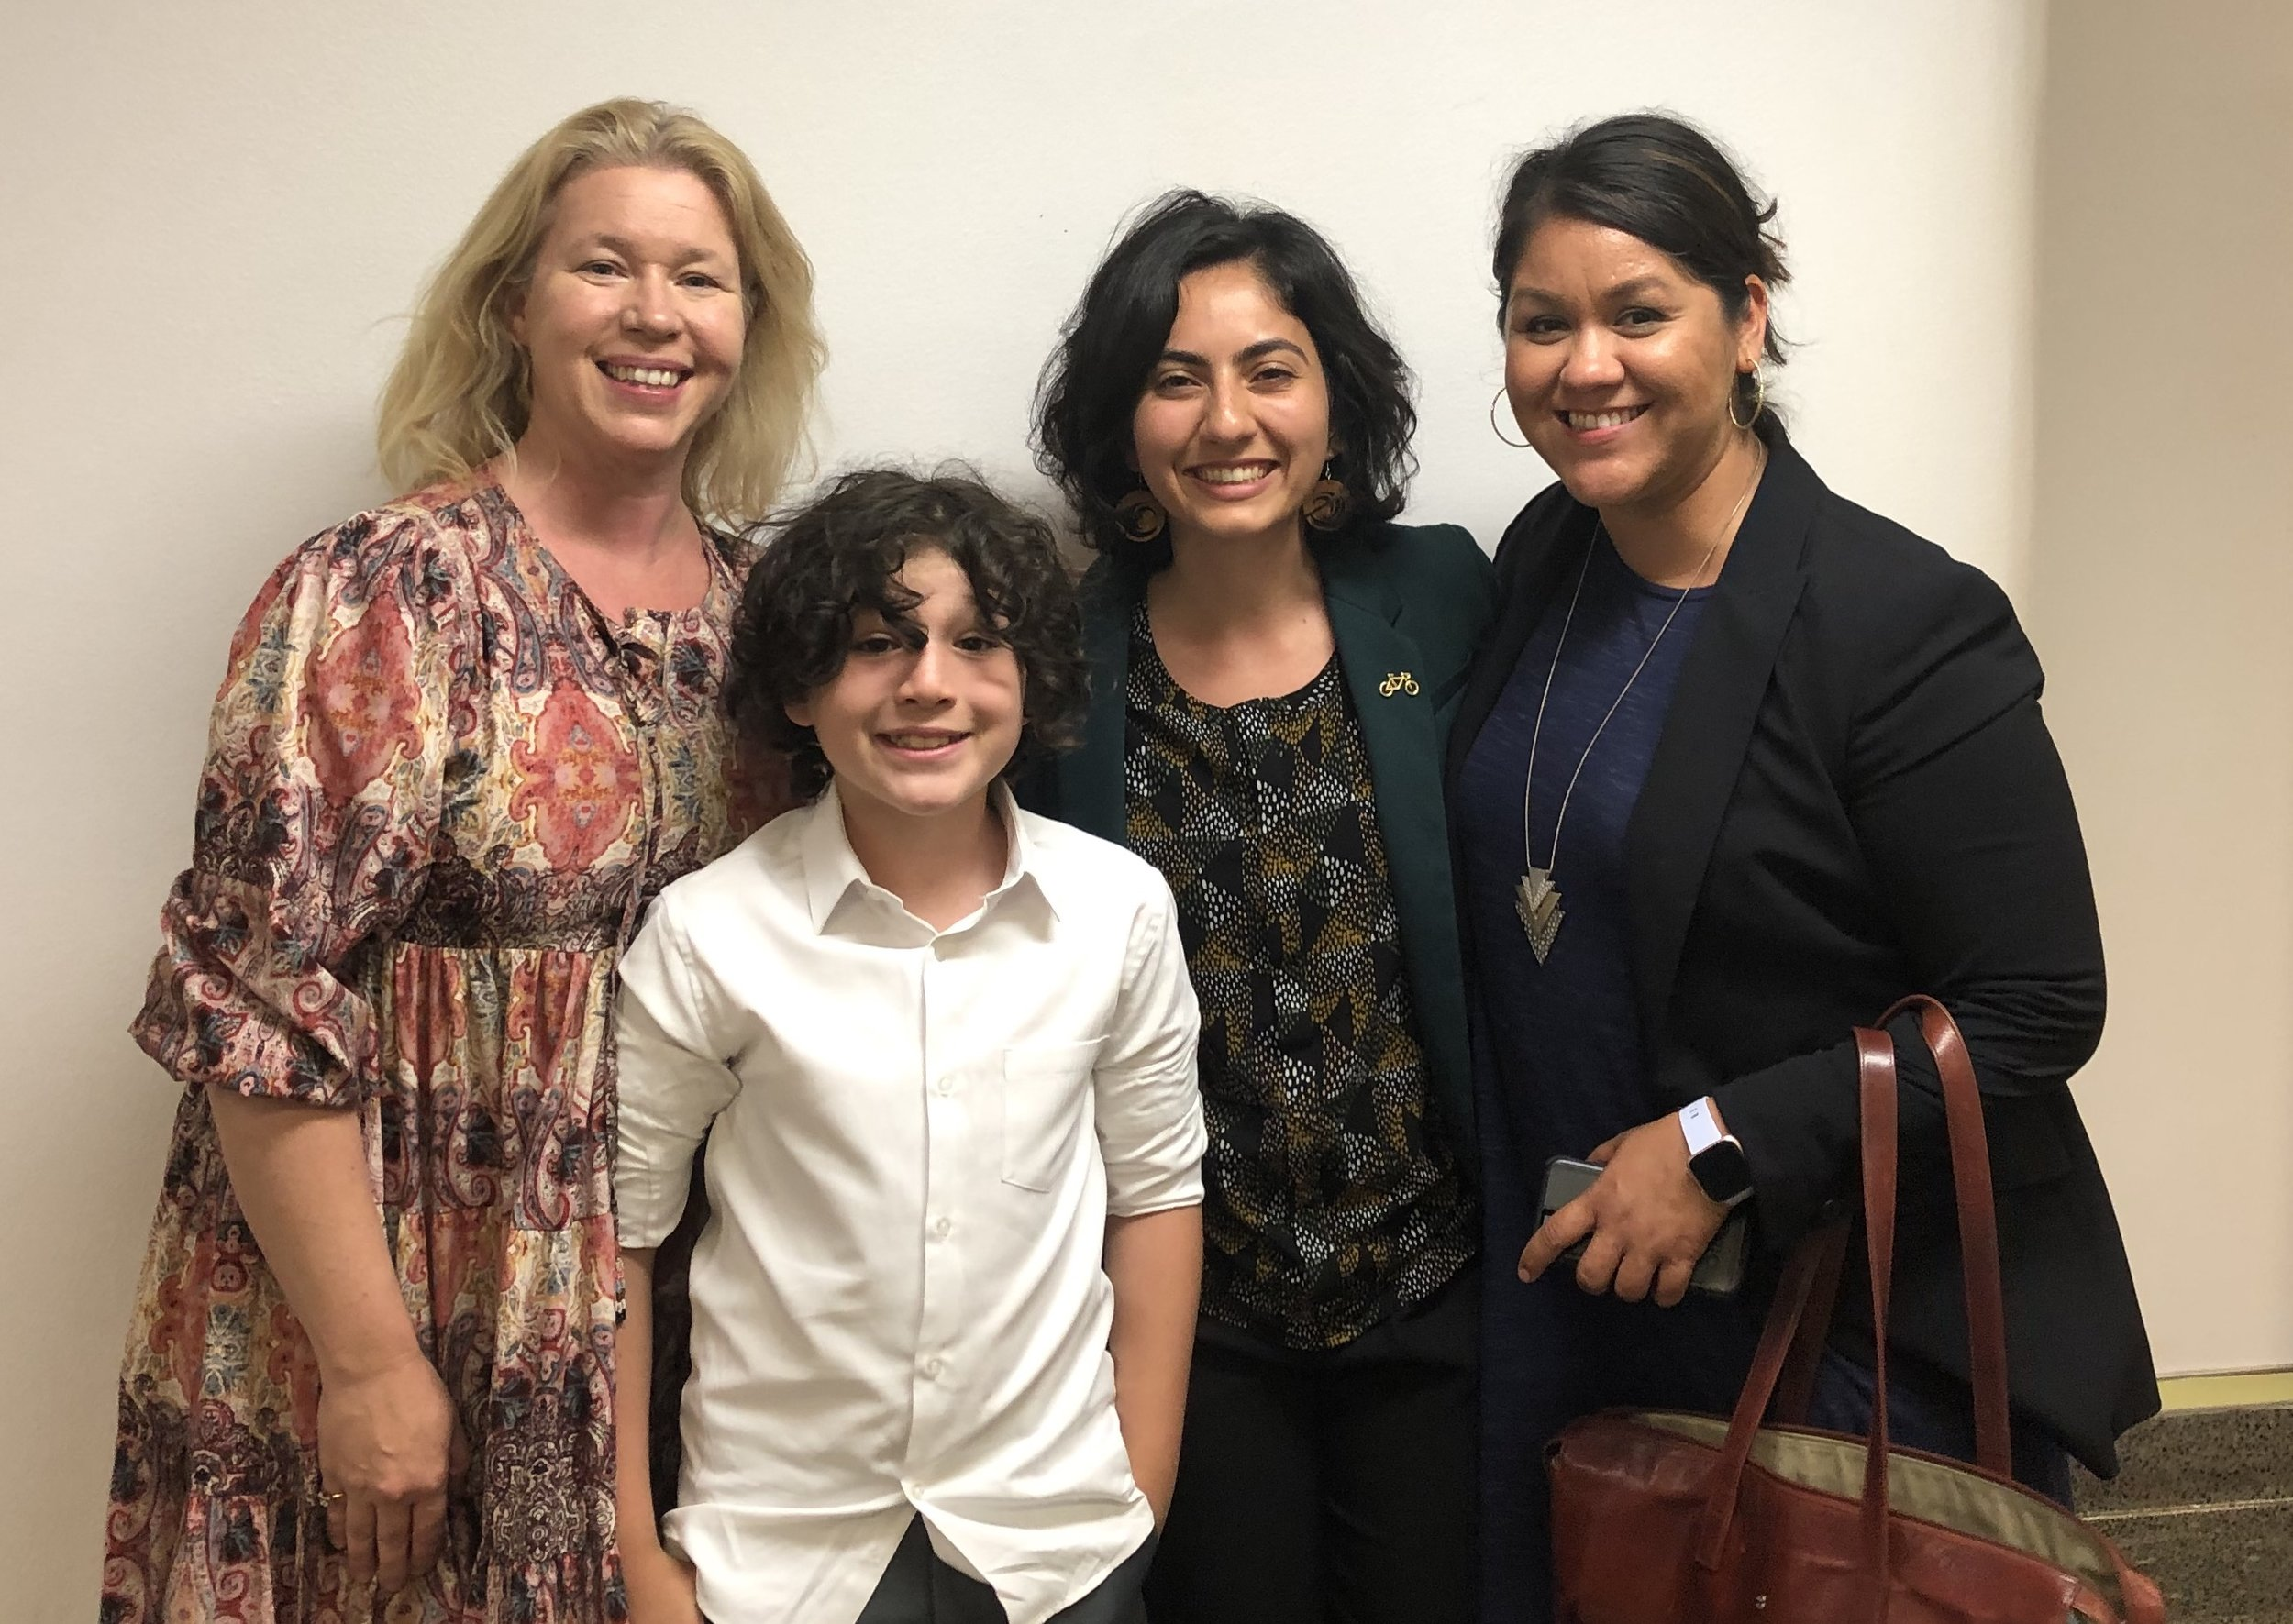 Cal Walks' Esther Rivera and CalBike's Linda Khamoushian celebrating with star witness Moses Trujillo (5th grader at Malcolm X Elementary School in Berkeley) and his mother after SB 127 passed out of the Assembly Transportation Committee.